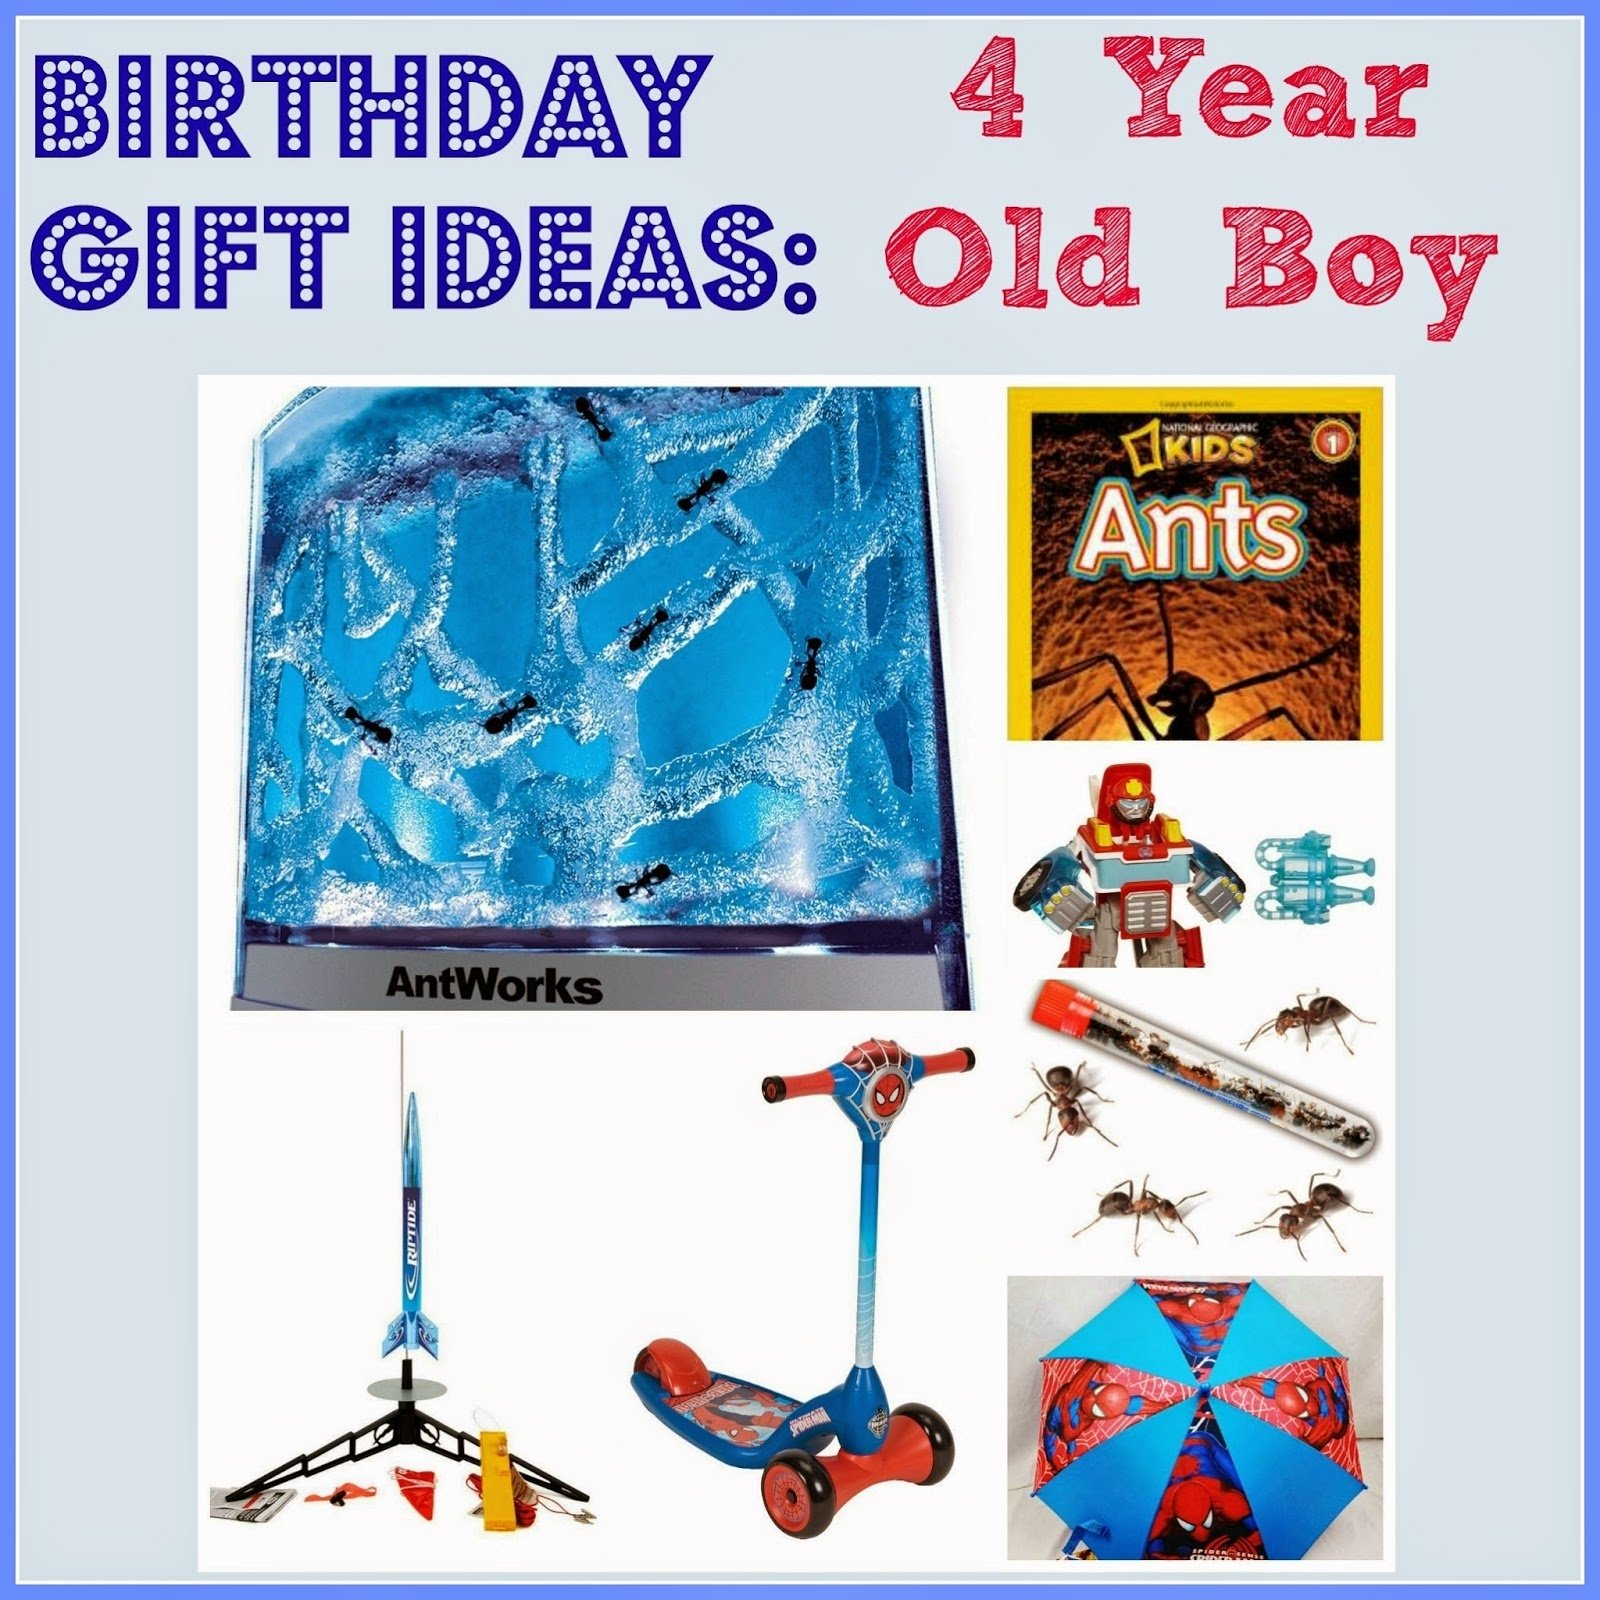 10 Cute Birthday Gift Ideas For 5 Year Old Boy 25 Cool Christmas Gifts